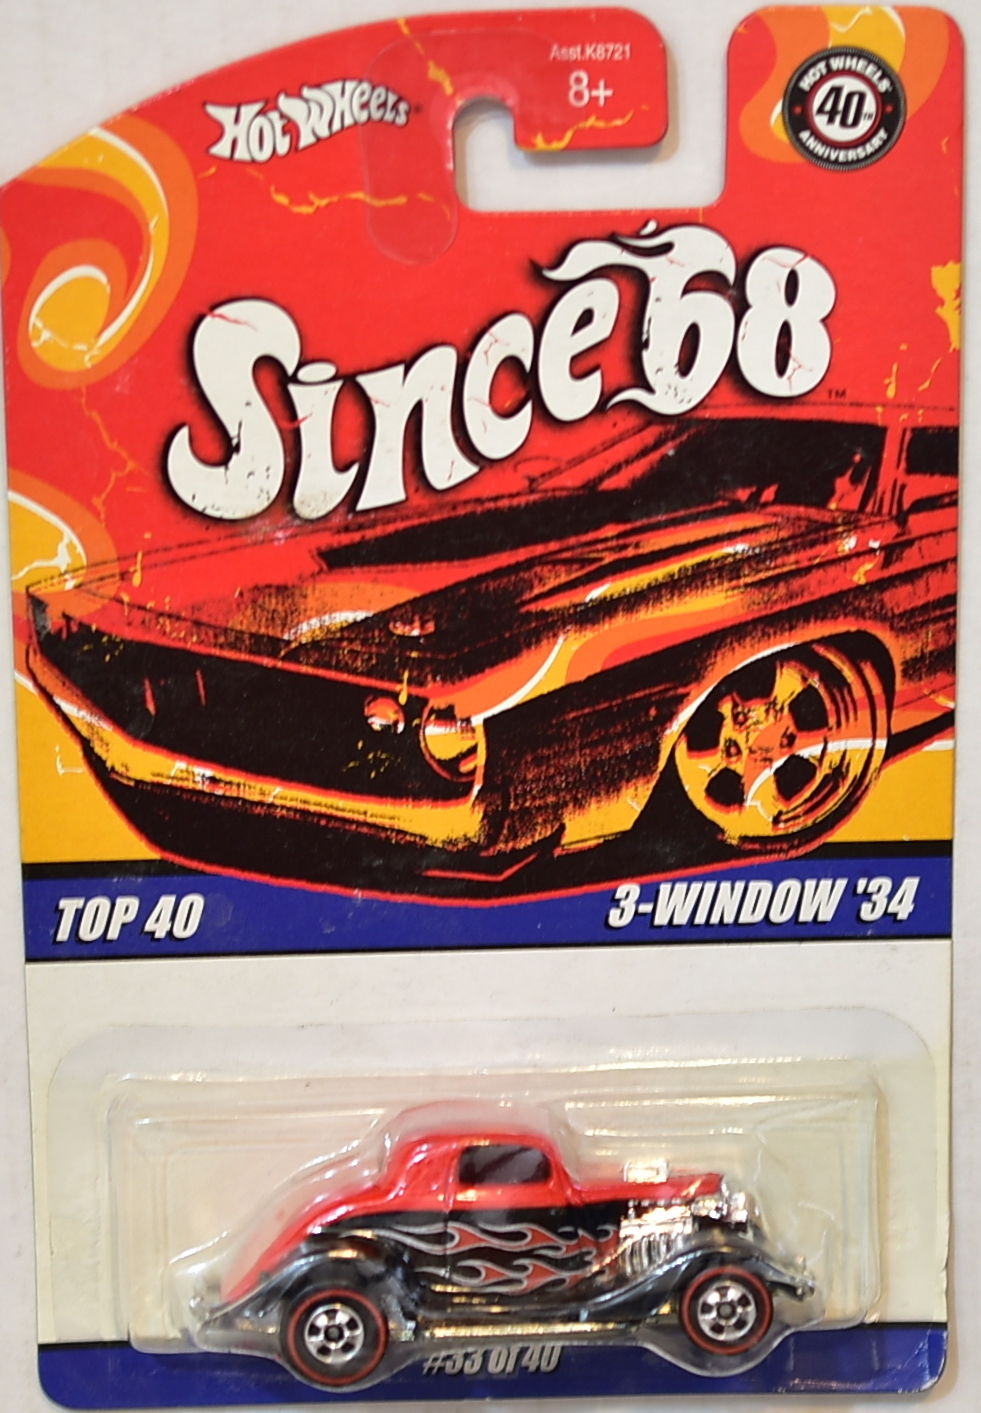 HOT WHEELS SINCE 68 TOP 40 3 - WINDOW '34 #33 OF 40